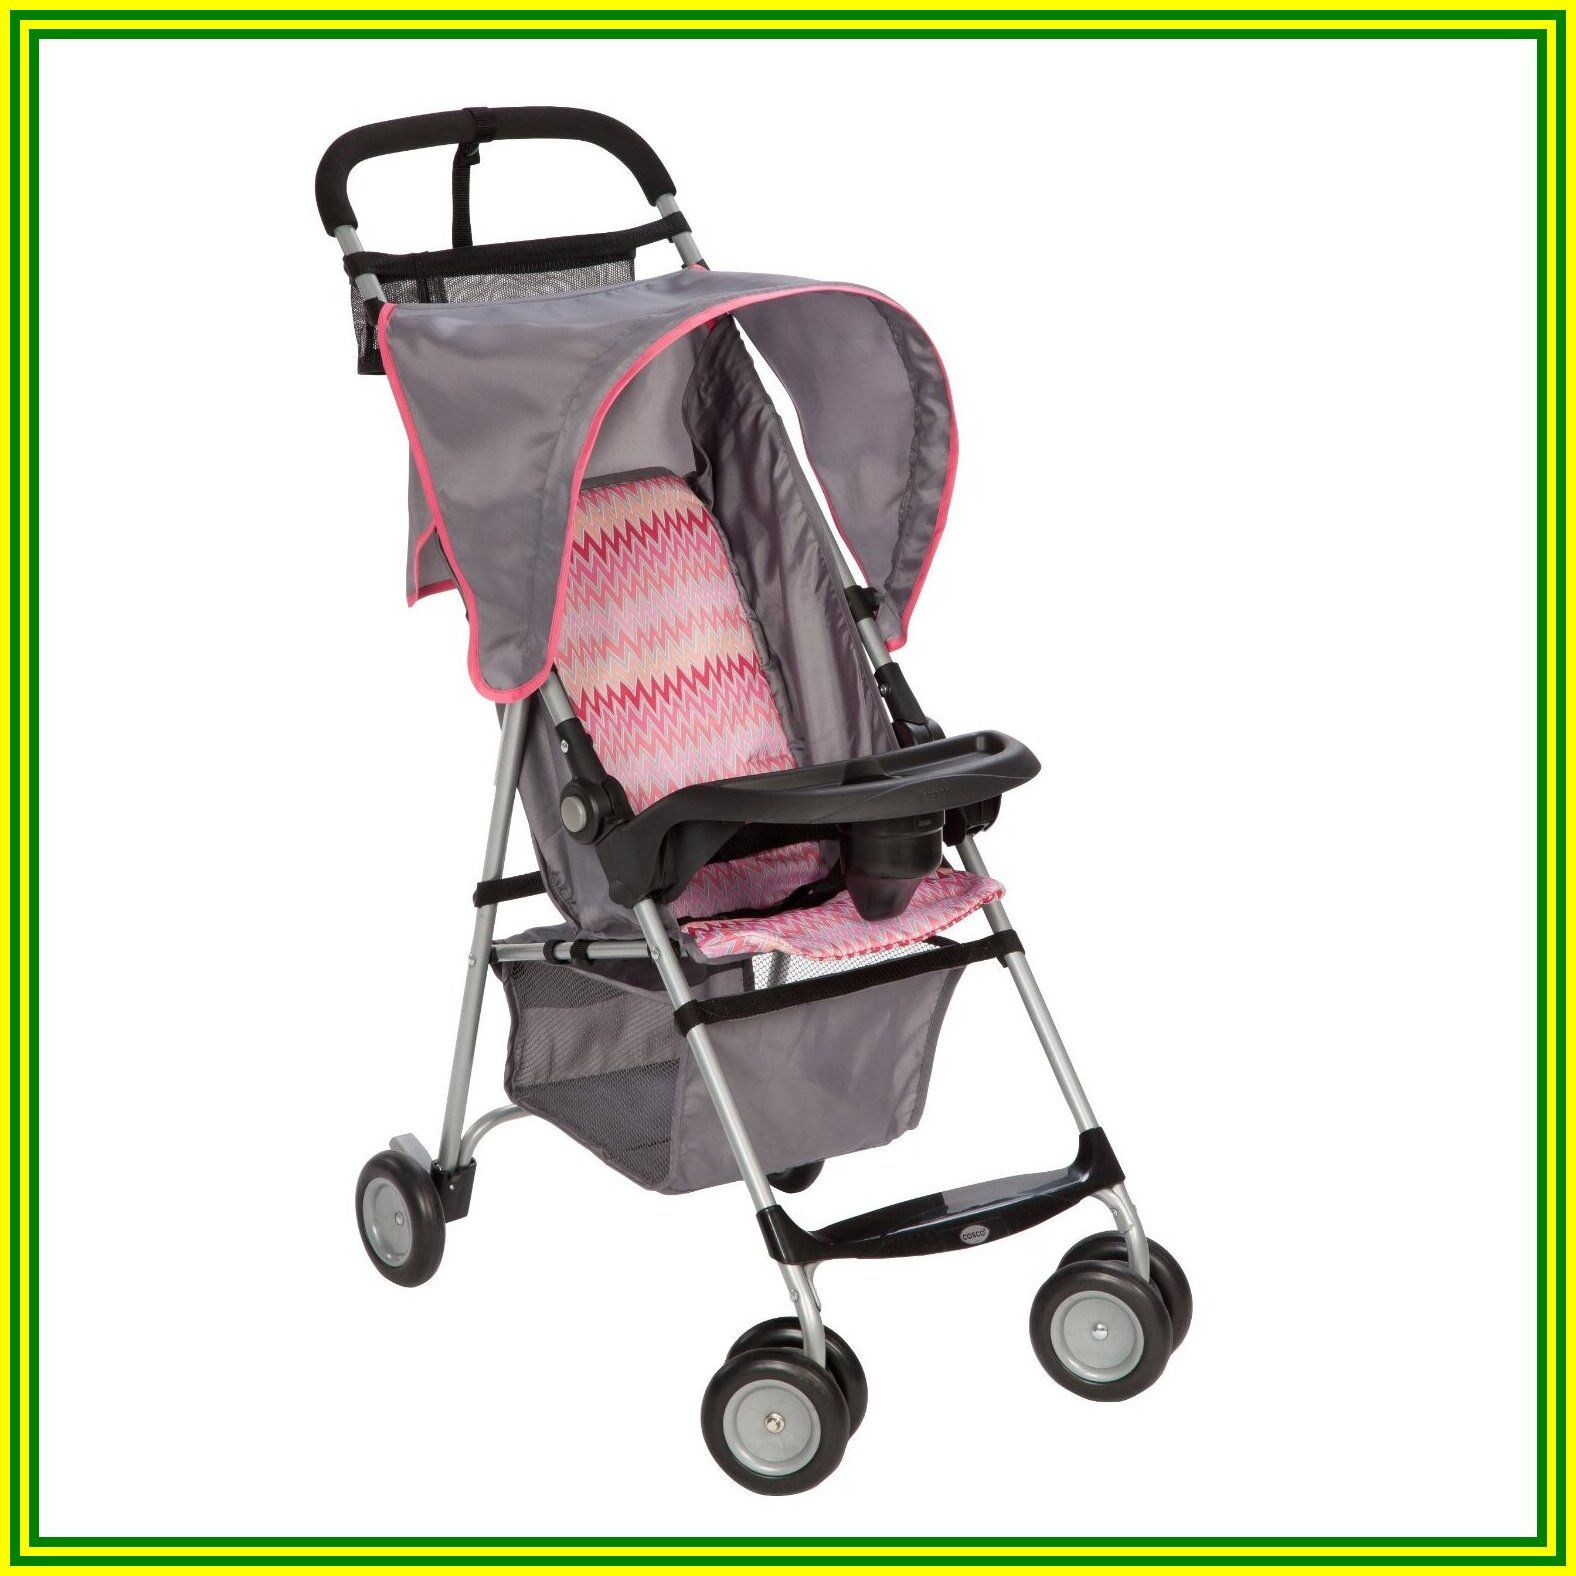 46++ Graco stroller frame instructions ideas in 2021